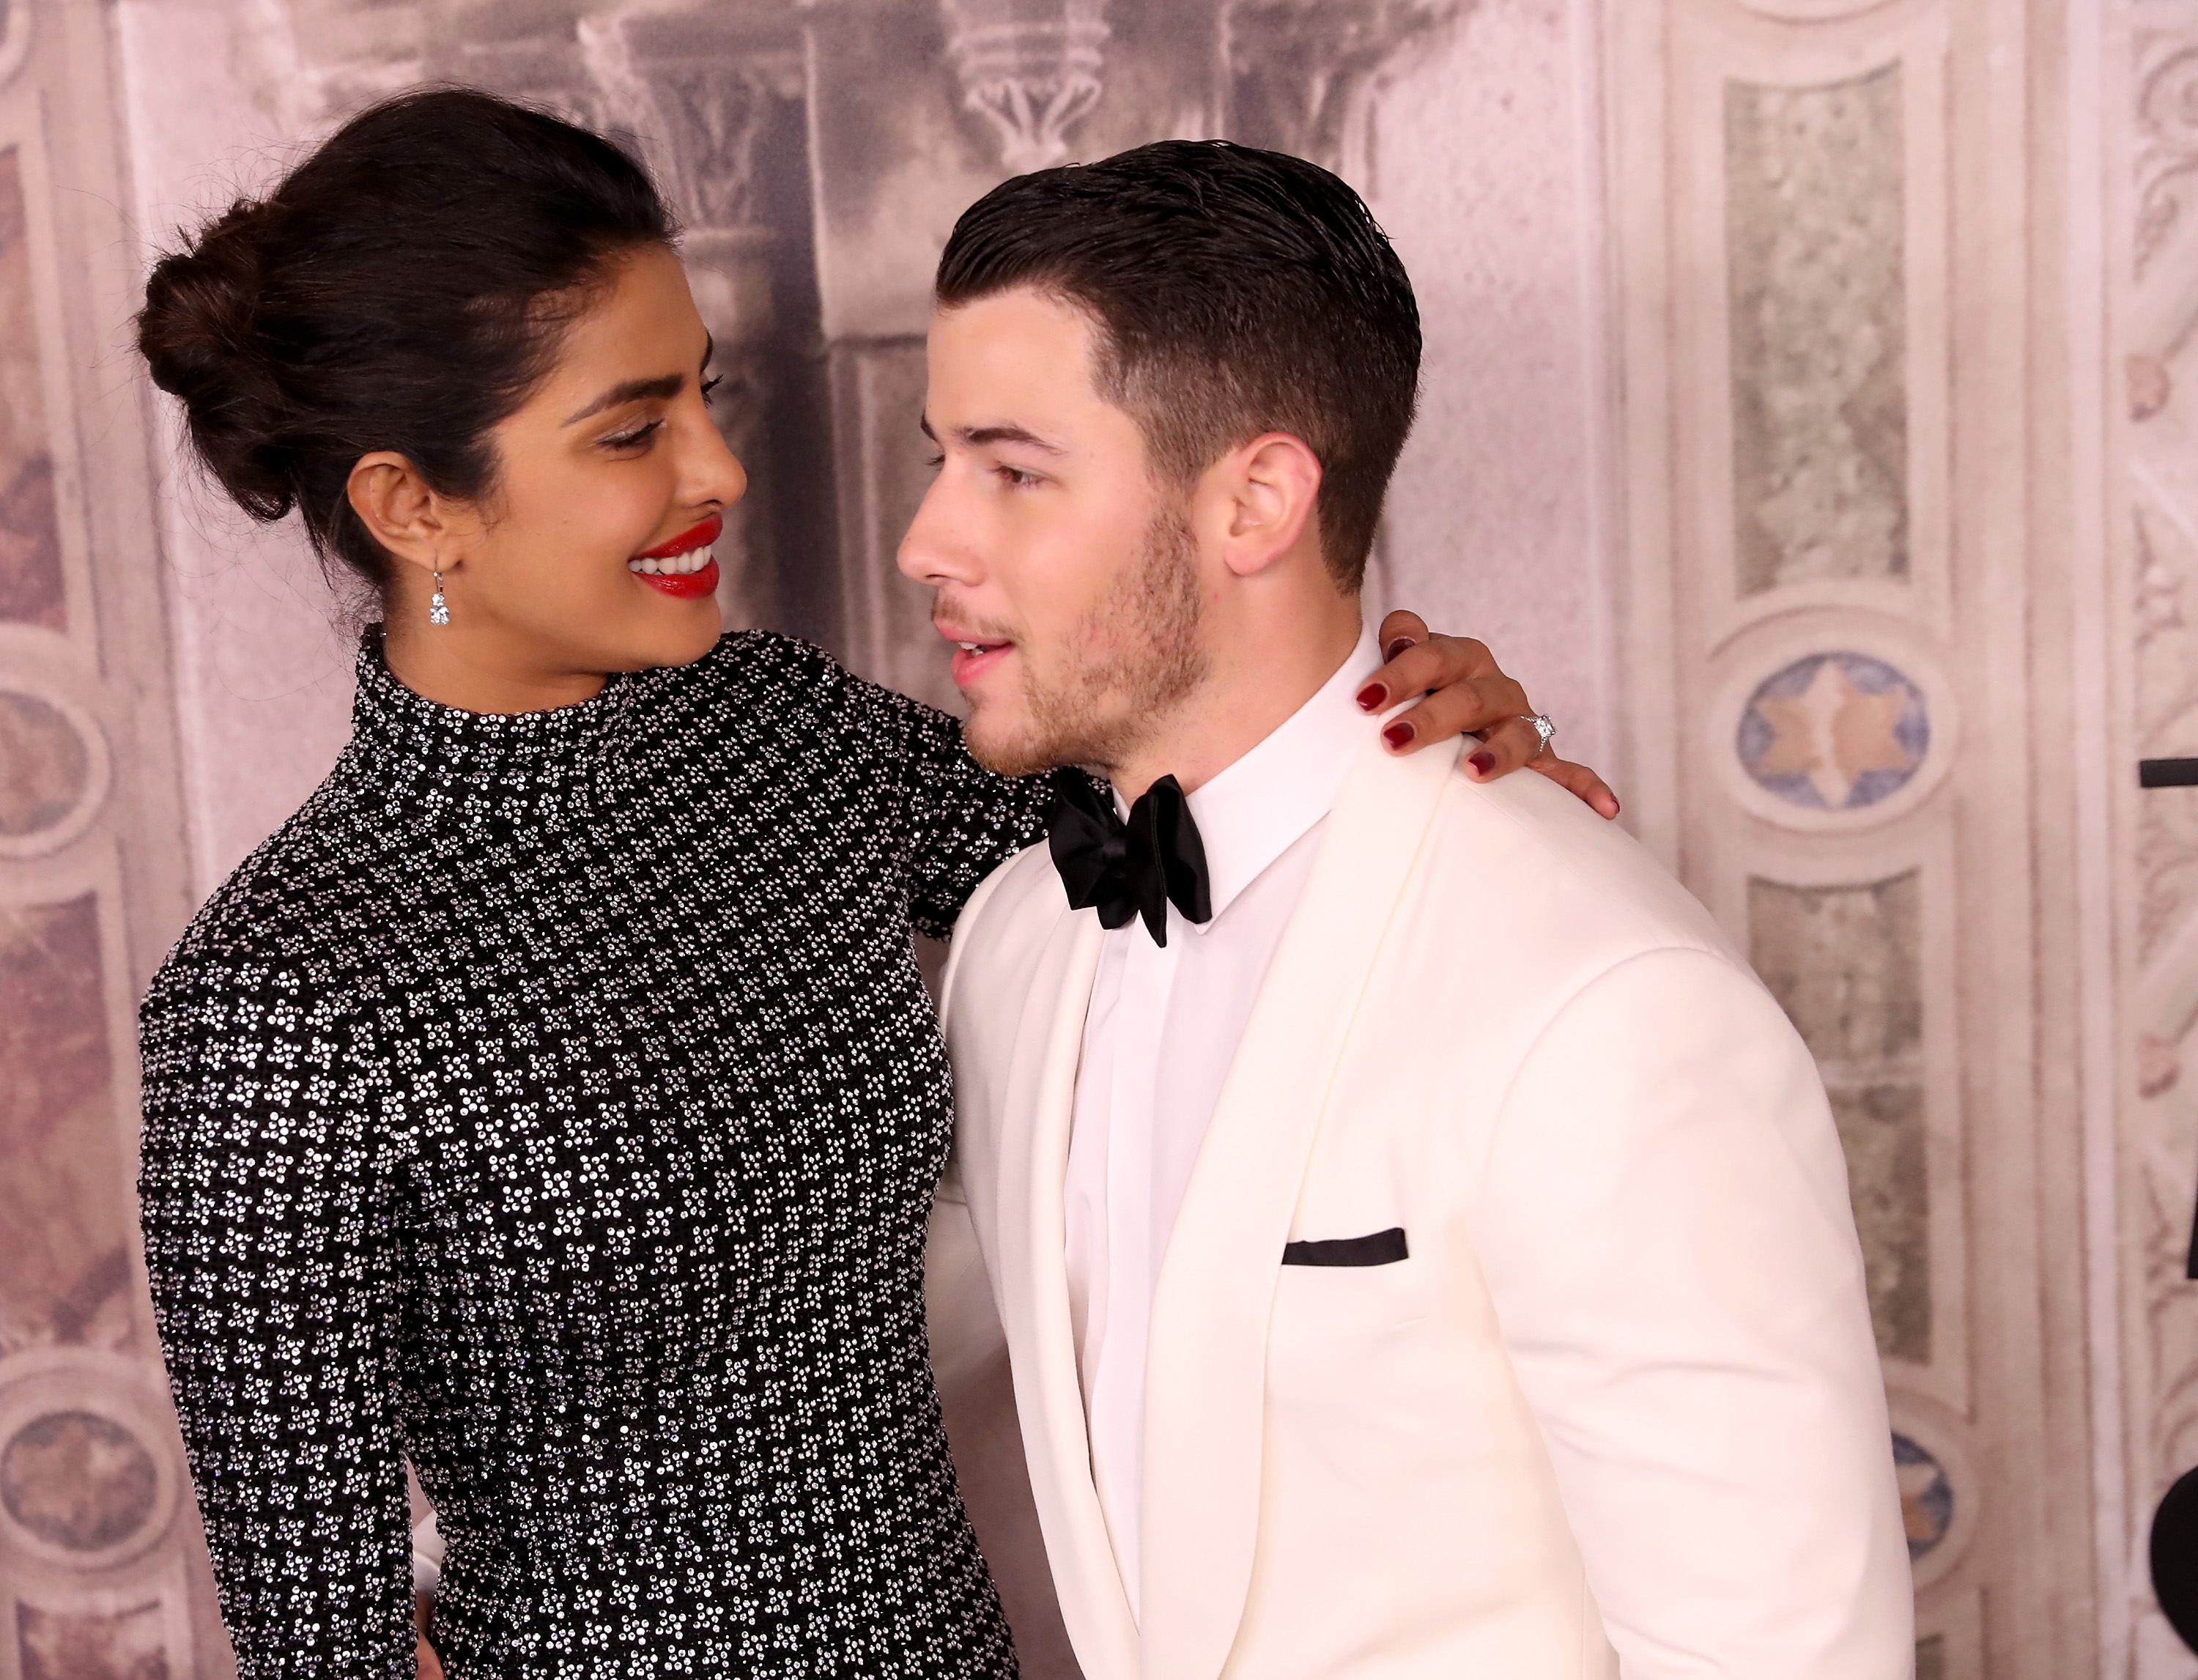 Priyanka Chopra reacts to Miley Cyrus' post about her 'ex' Nick Jonas